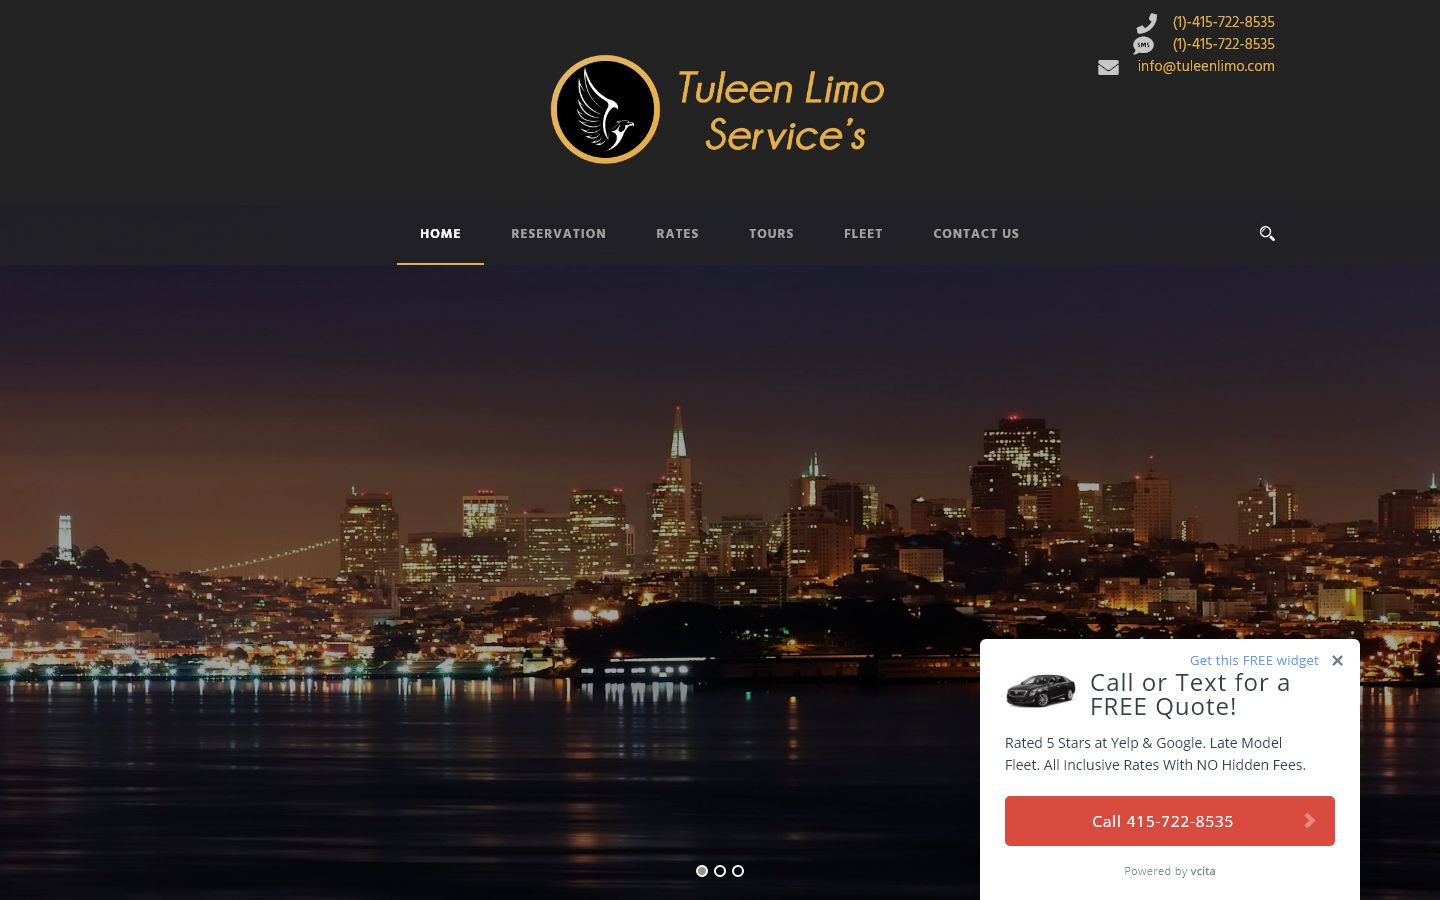 Tuleen Limo Services